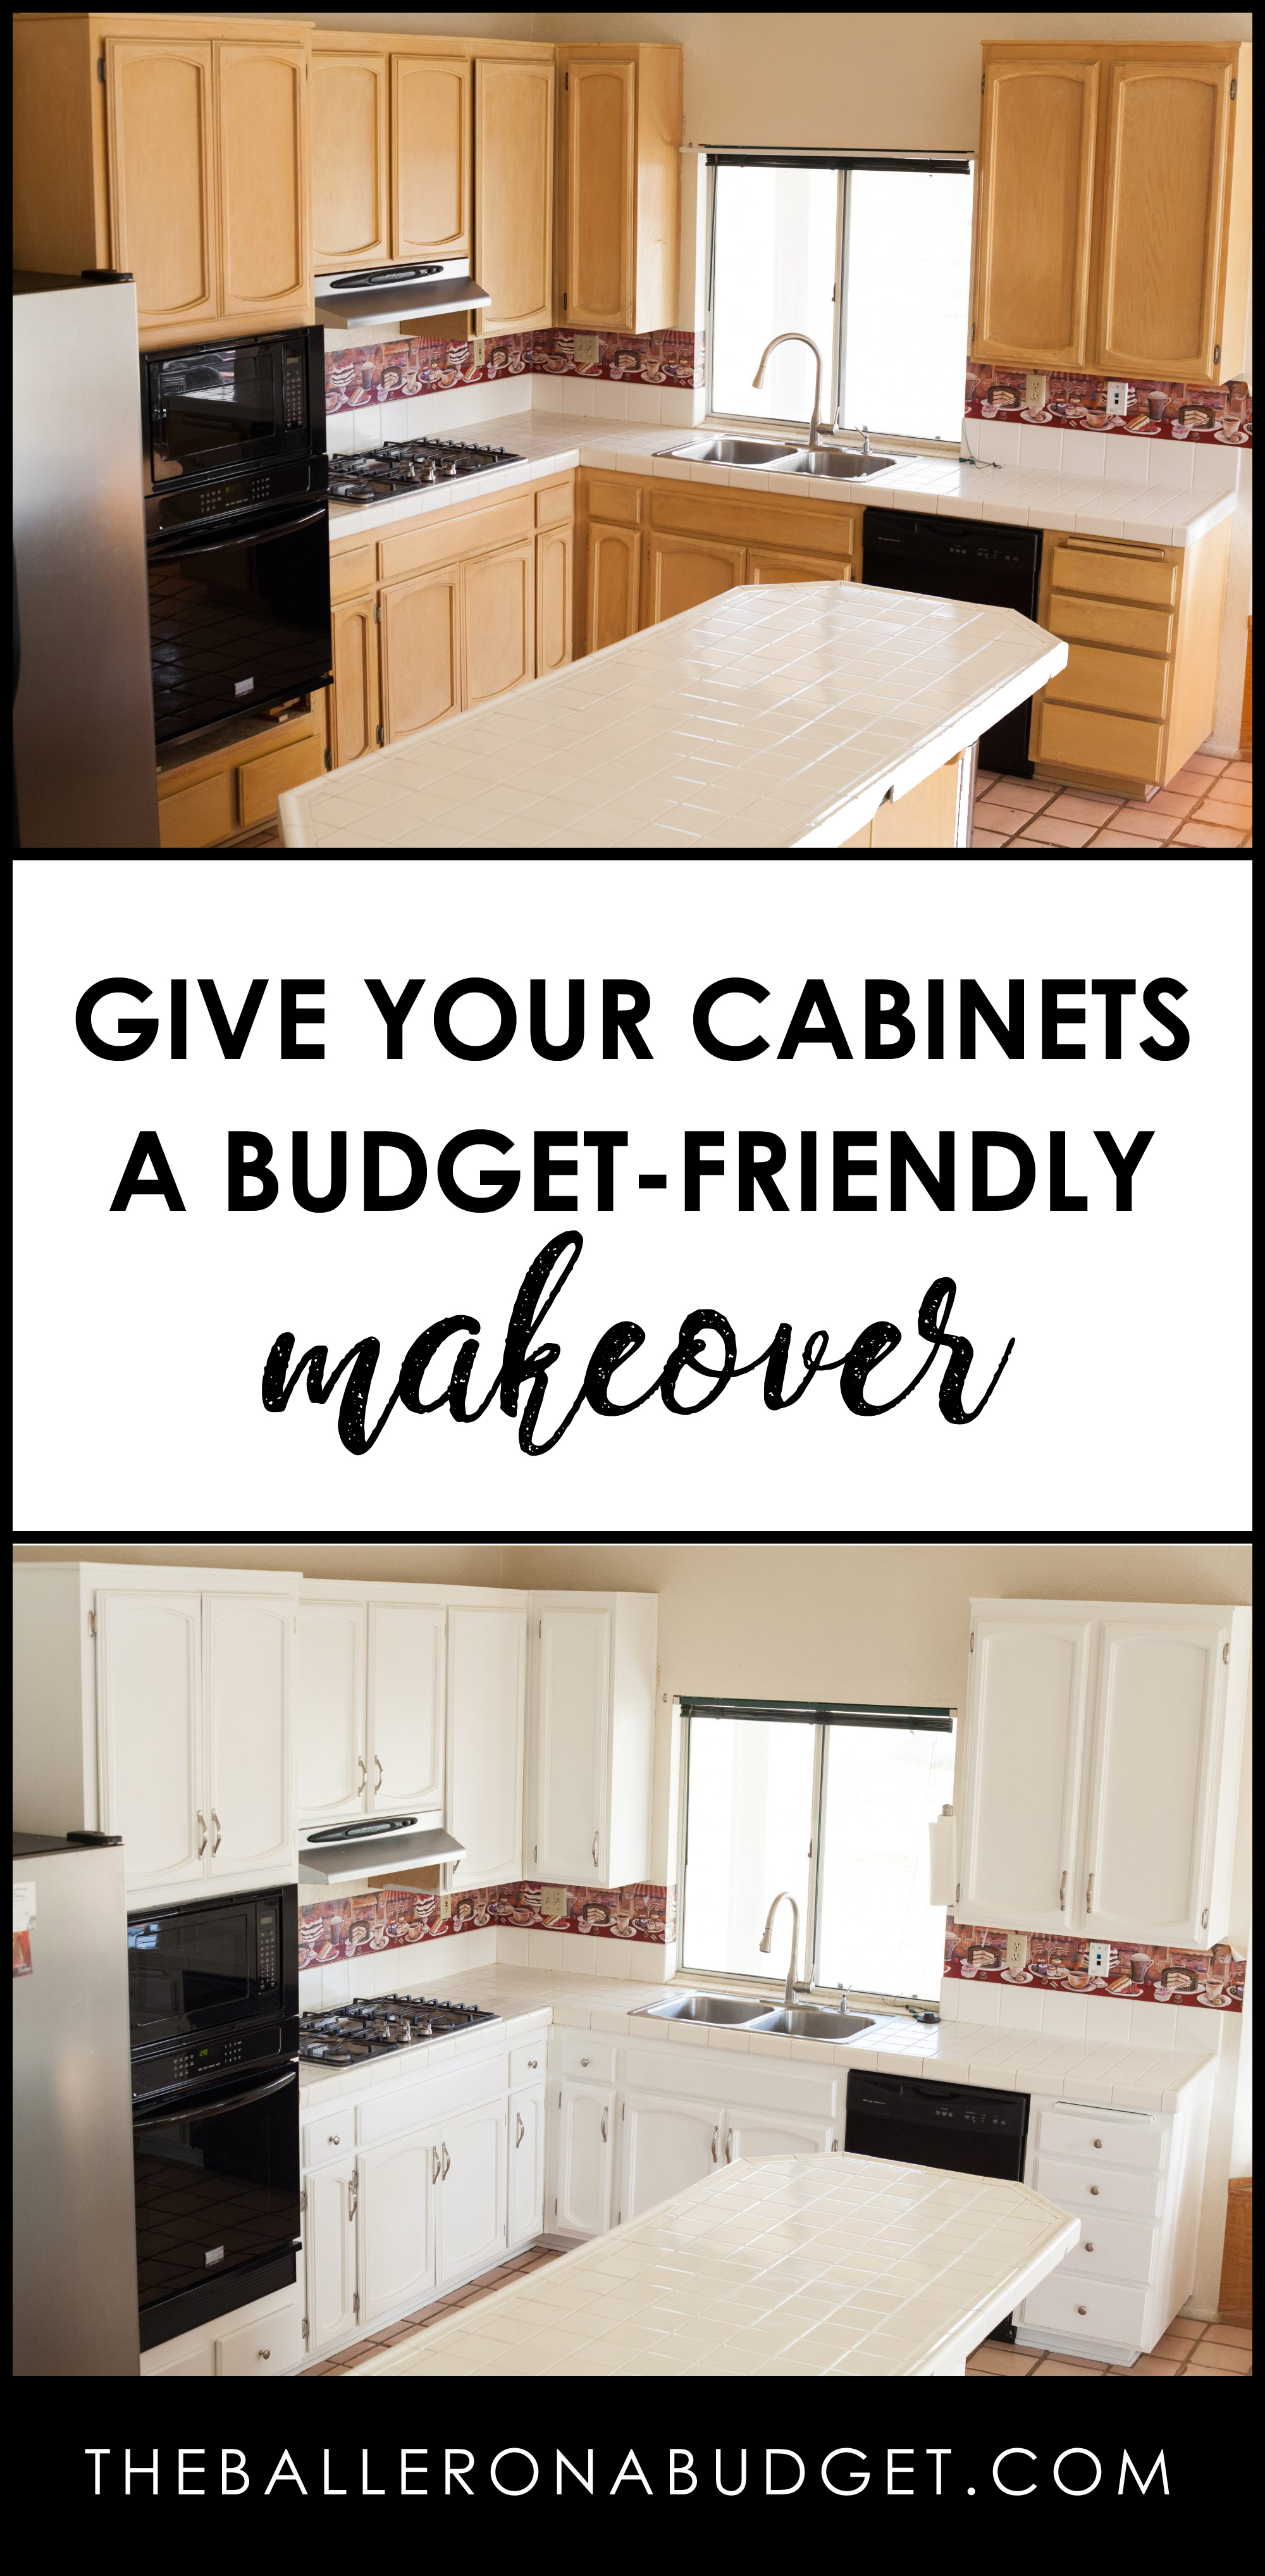 A fresh coat of paint and new hardware can be a budget-friendly way to dramatically update your kitchen cabinets. This DIY tutorial will show you how to give your cabinets a facelift, from start to finish! - www.theballeronabudget.com